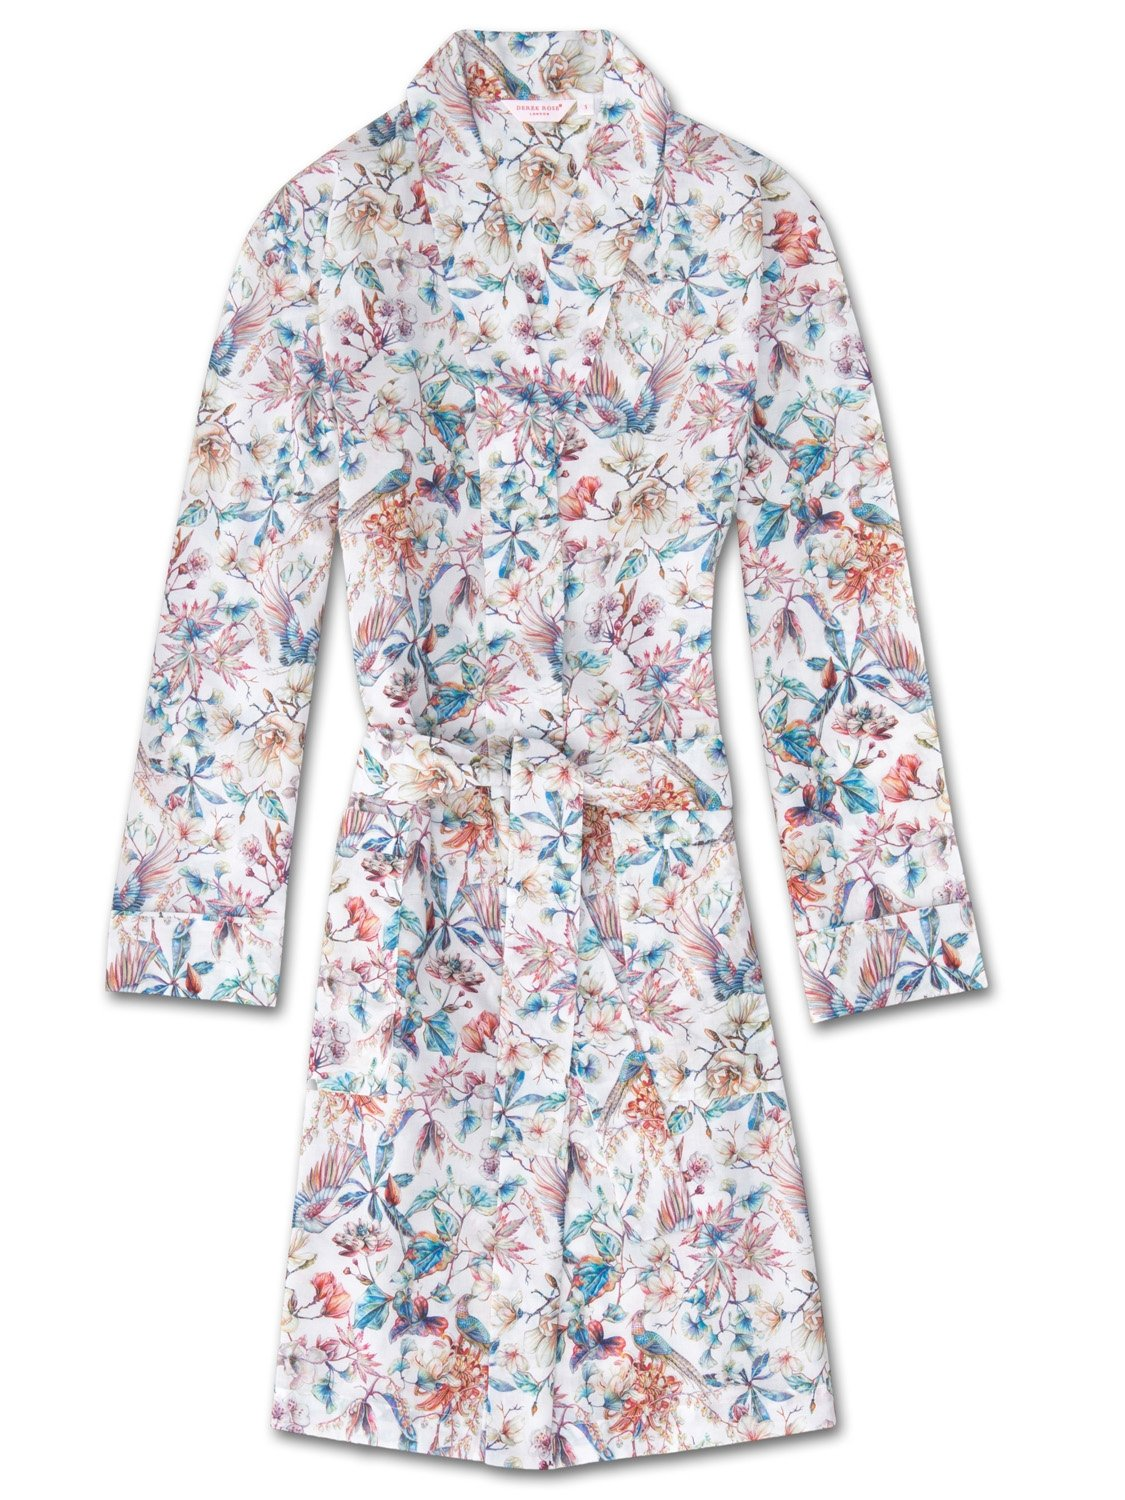 Women's Dressing Gown Ledbury 14 Cotton Batiste Multi